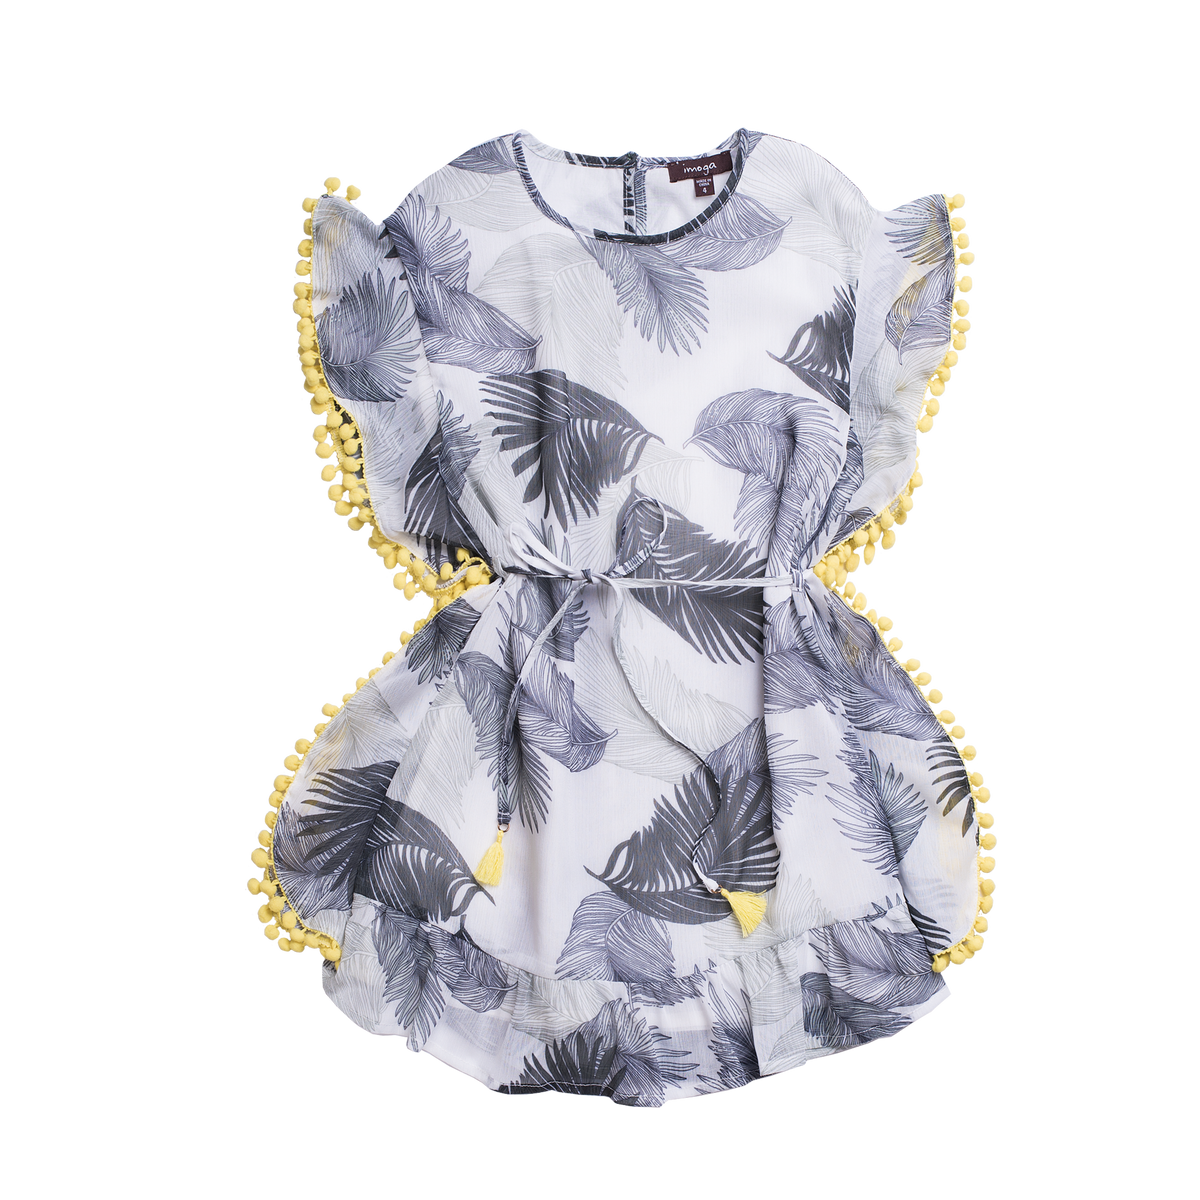 Grey sleeveless dress with feather designs all over and the sides are lined with yellow pom pom balls. By Imoga.